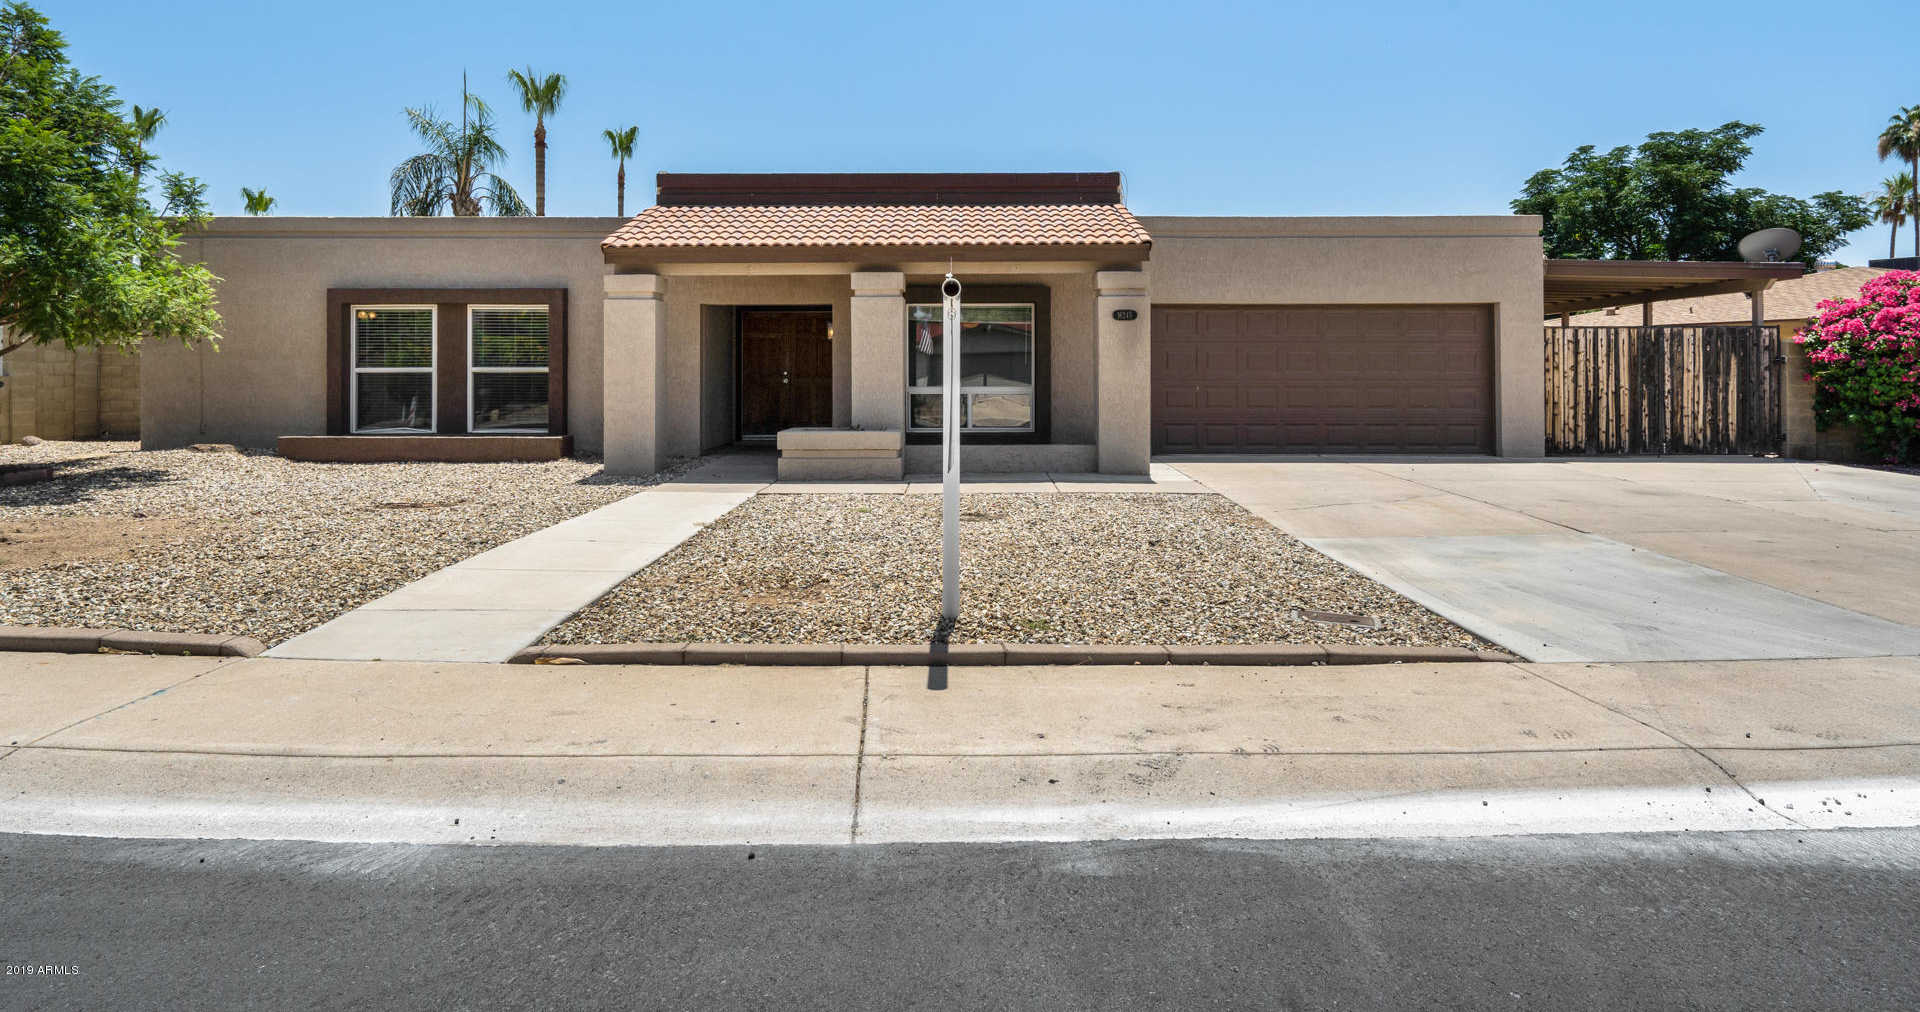 $300,000 - 4Br/2Ba - Home for Sale in Park Place North Unit One Amd Lot 1-245, Glendale